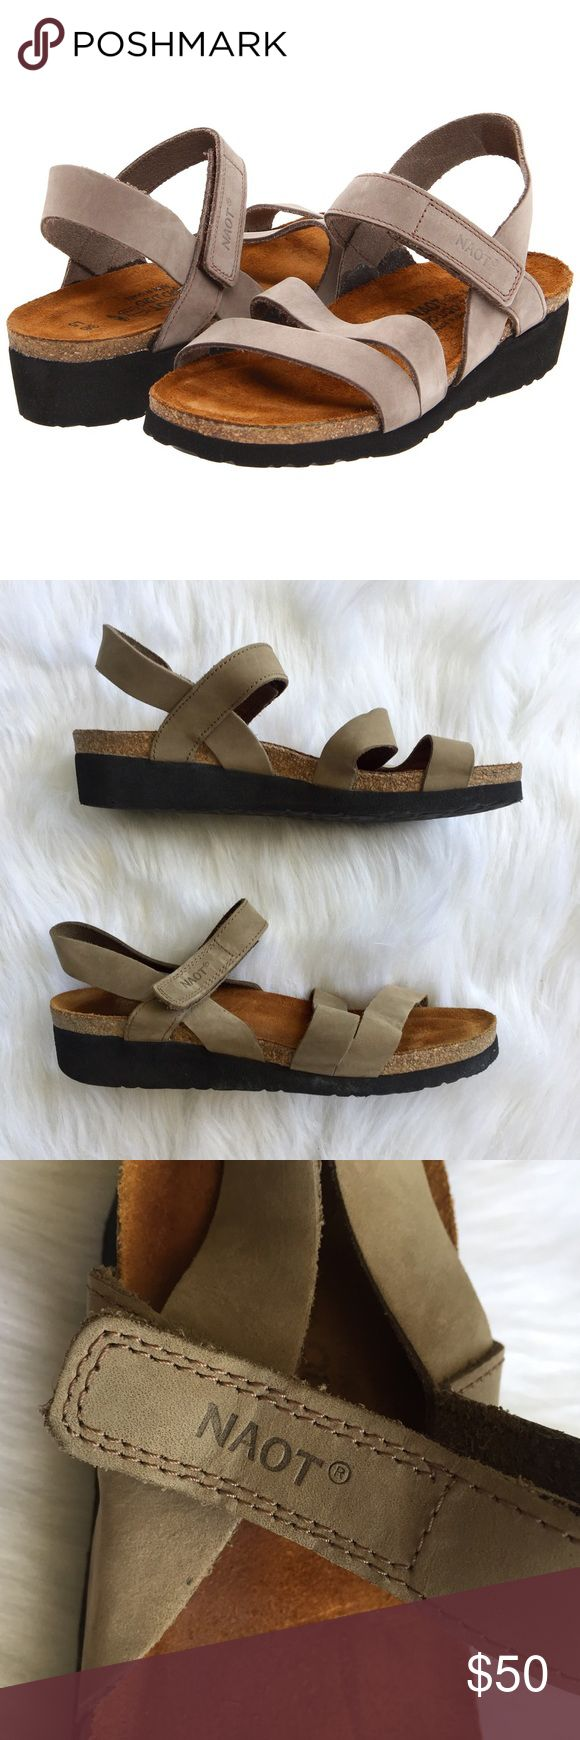 "Naot ""Kayla"" Sandals I believe these are in the color Clay Nubuck. They have very gentle wear with only a few minor signs of use that have been pictured. Natural upper leather ""breathes"" to keep the foot fresh. A shock absorbent footpad also absorbs perspiration. Naot footpads encourage natural and correct posture; weight of the body is distributed equally over the entire foot. Marked as size 40, on the Naot website, they say this converts to a US 9-9.5. I would say they fit a 9 best. Naot…"